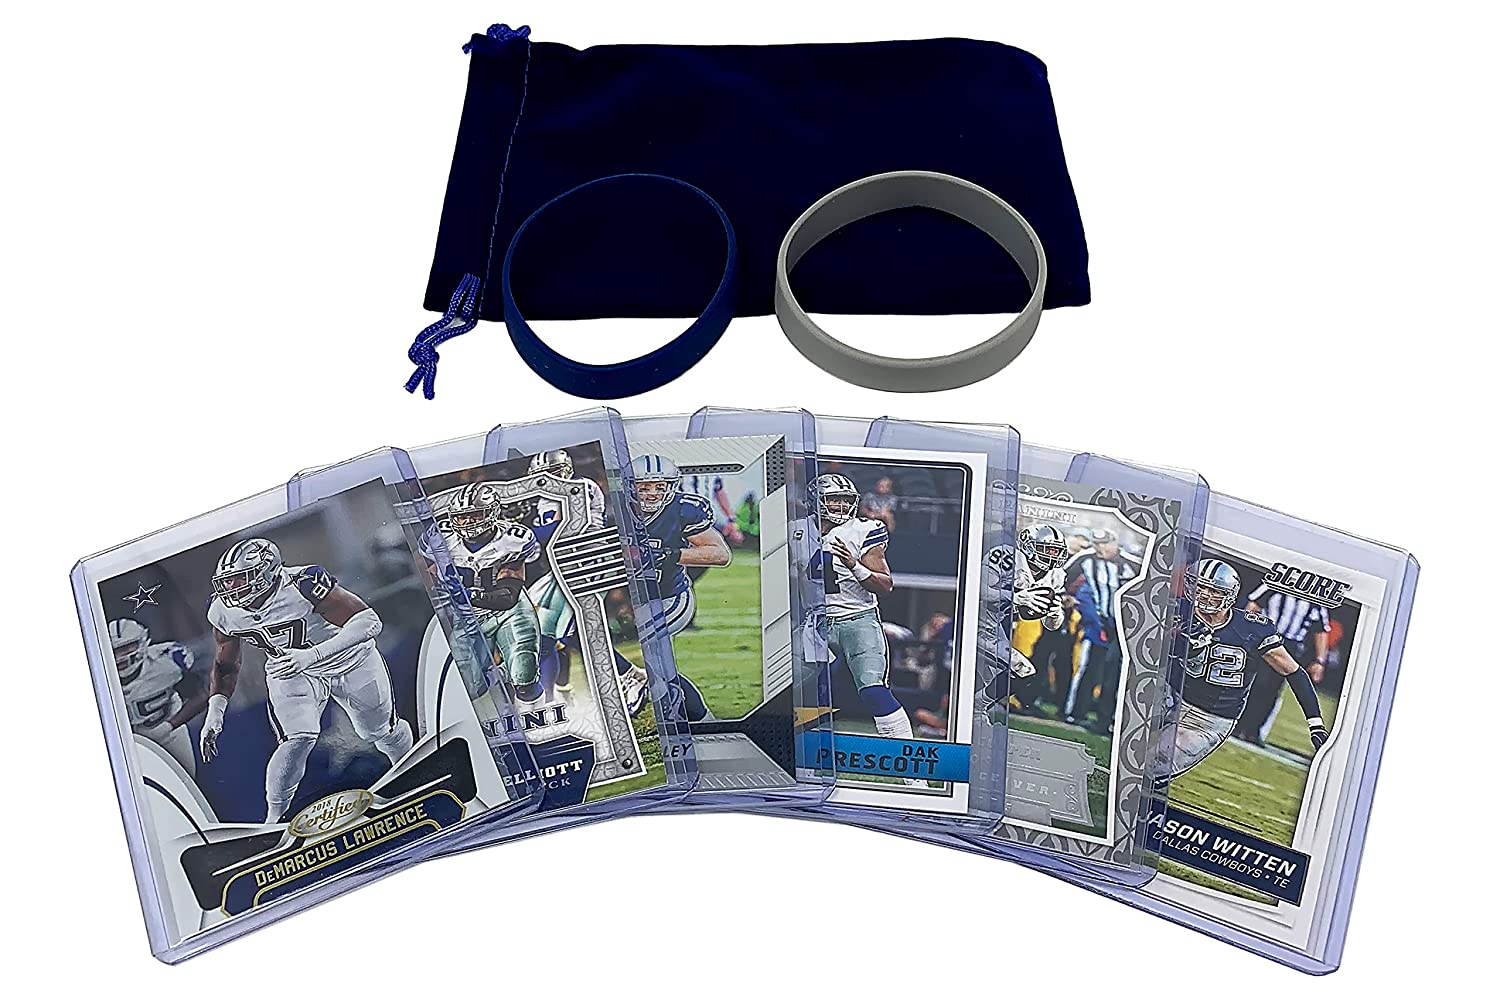 Dallas Cowboys Cards: Dak Prescott, Ezekiel Elliott, Cole Beasley, Demarcus Lawrence, Jason Witten, Amari Cooper ASSORTED Football Trading Card and Wristbands Bundle Panini Bowman Topps